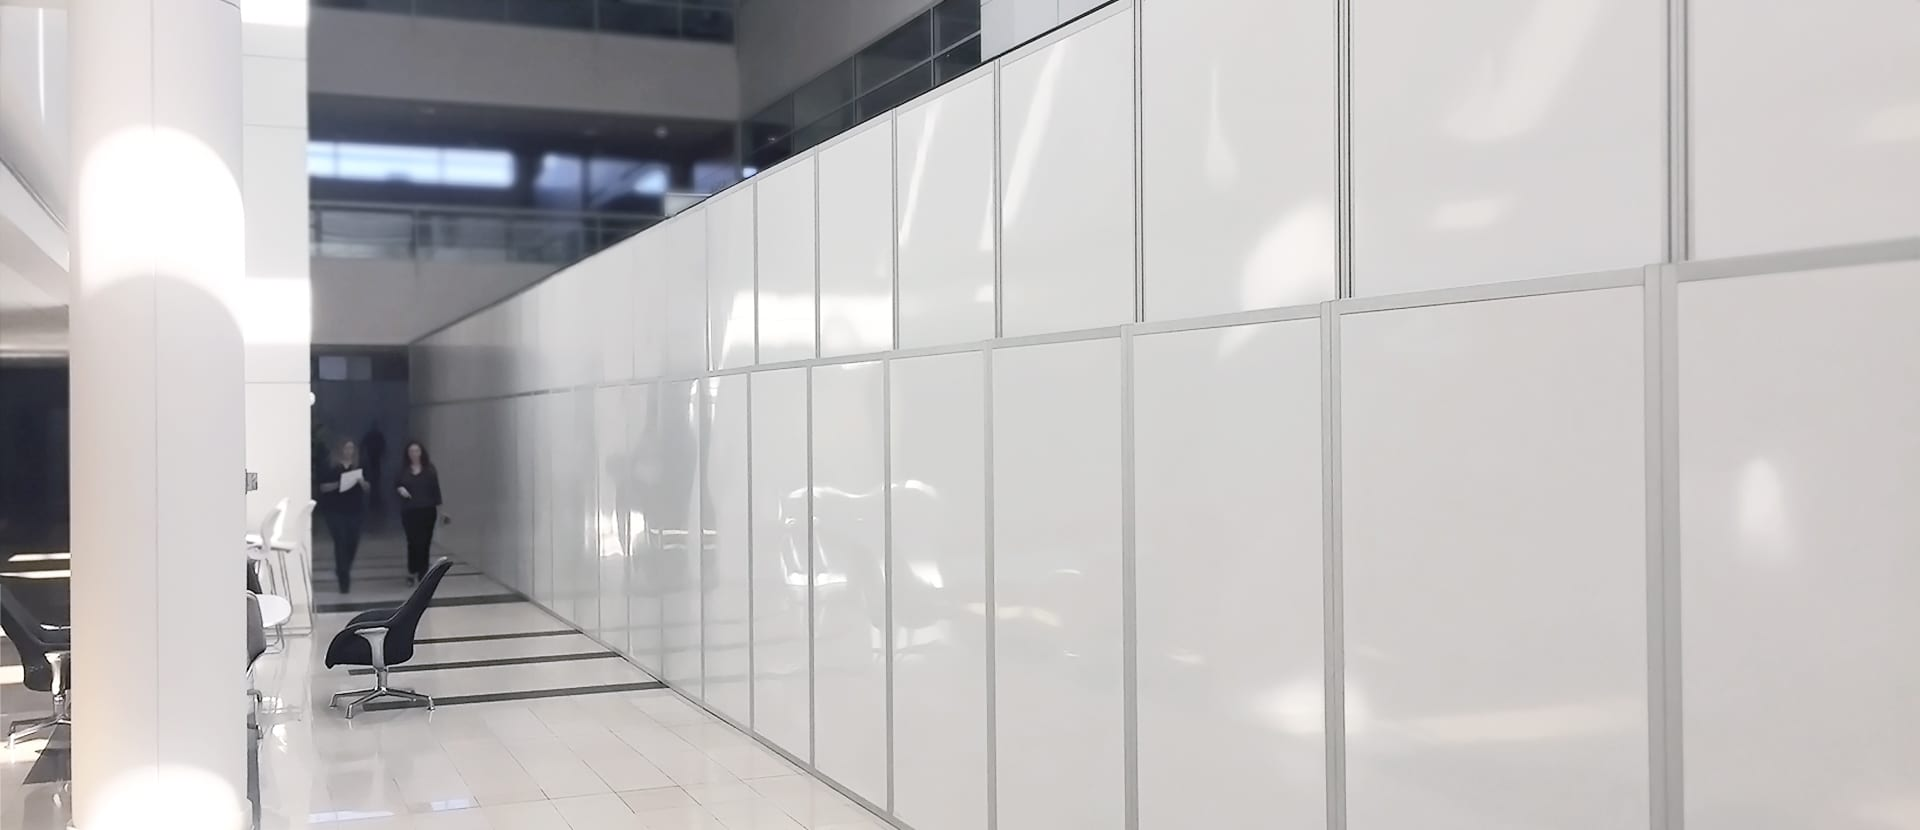 RealWall panels in commercial setting